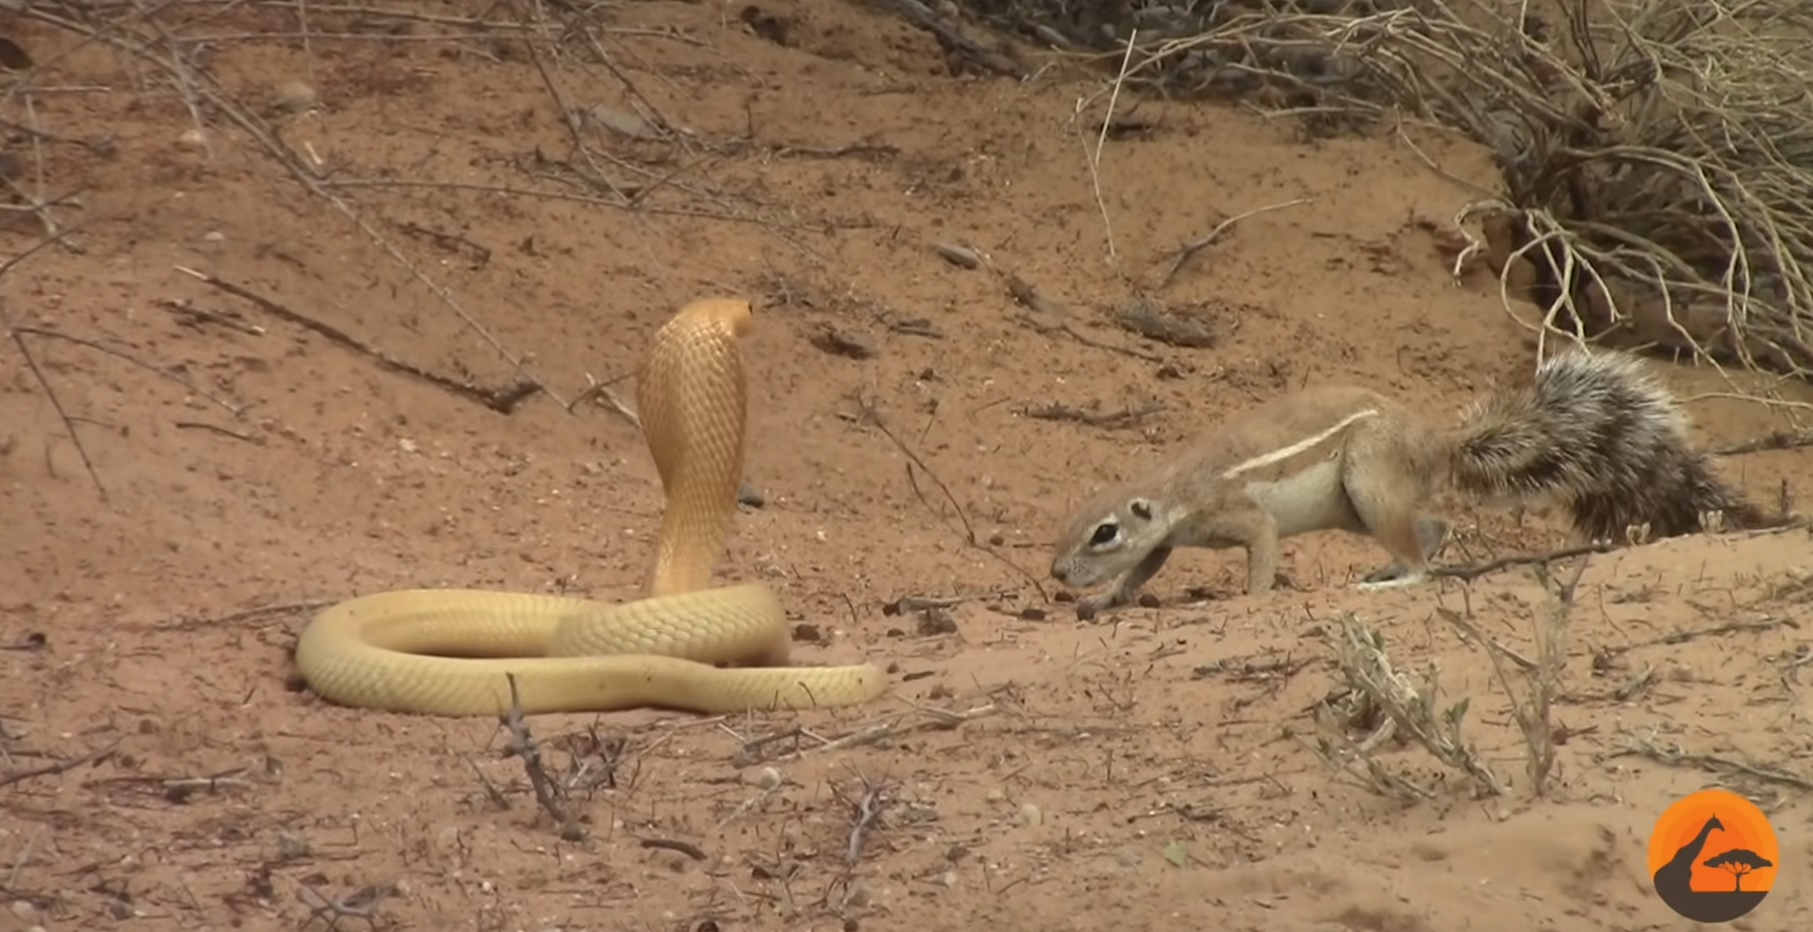 Squirrel Faces Cobra To Protect Her Babies